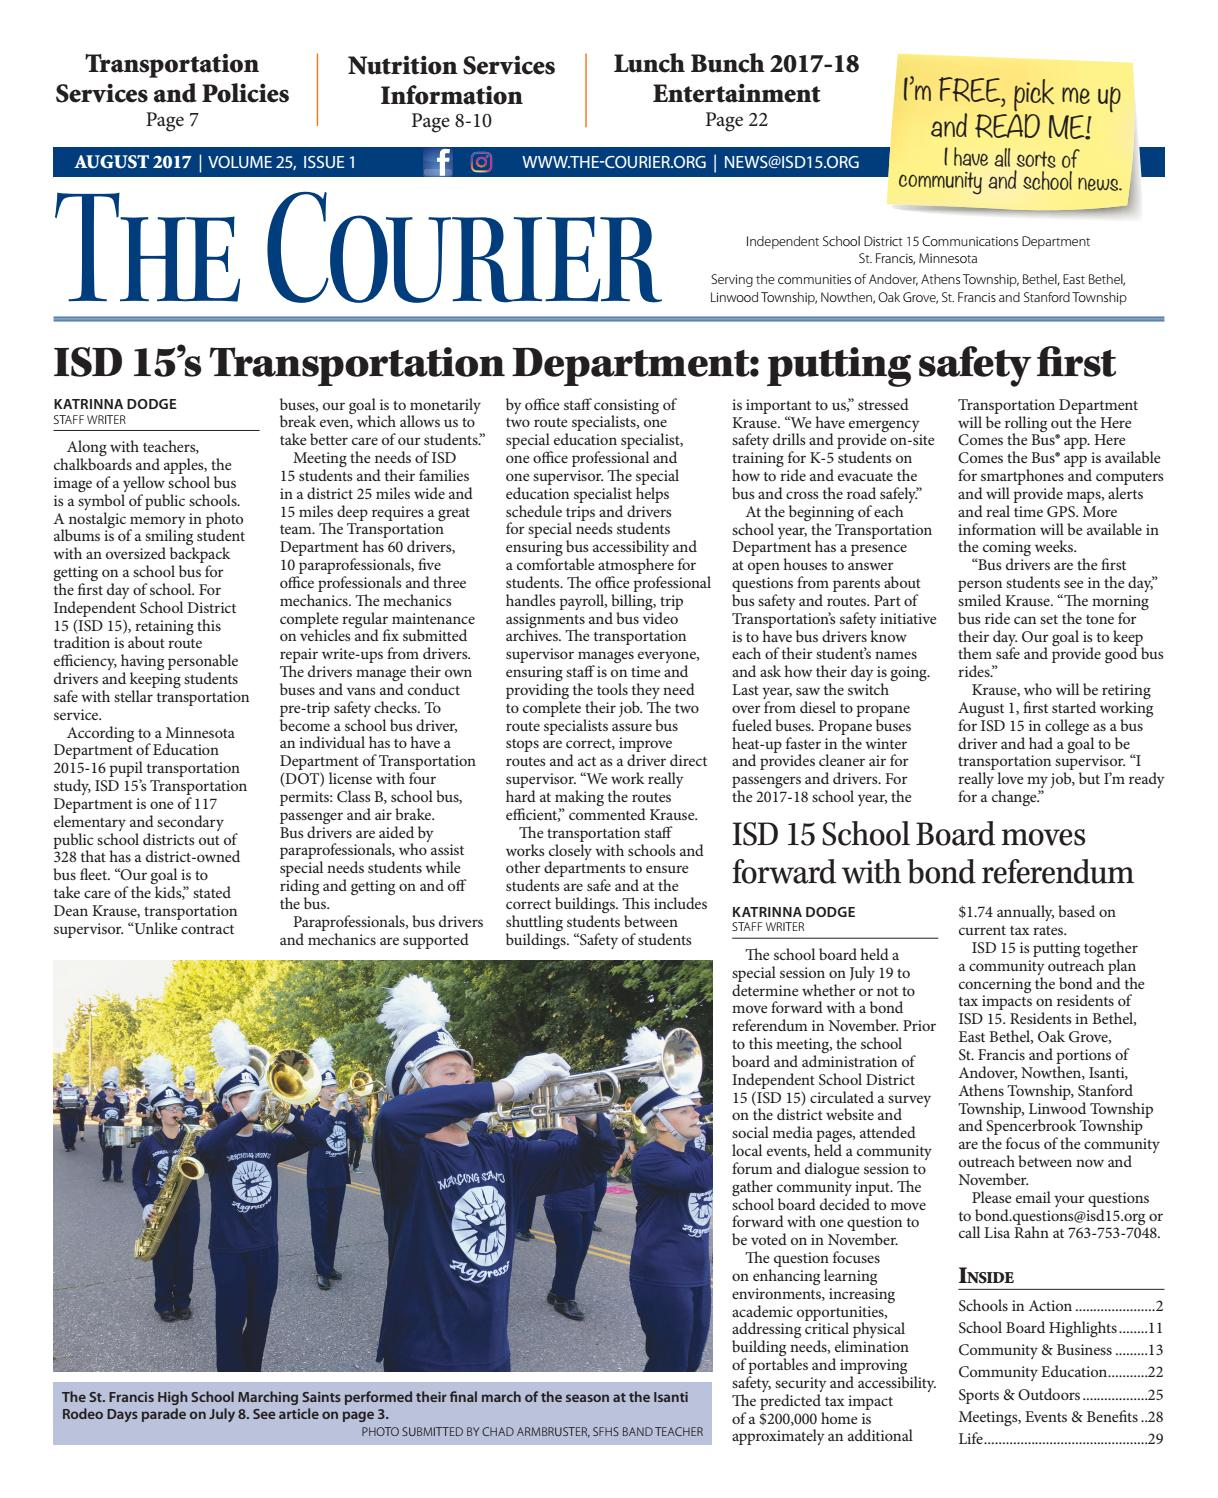 adc3e9ca23 The Courier - August 2017 by St. Francis Area Schools - issuu